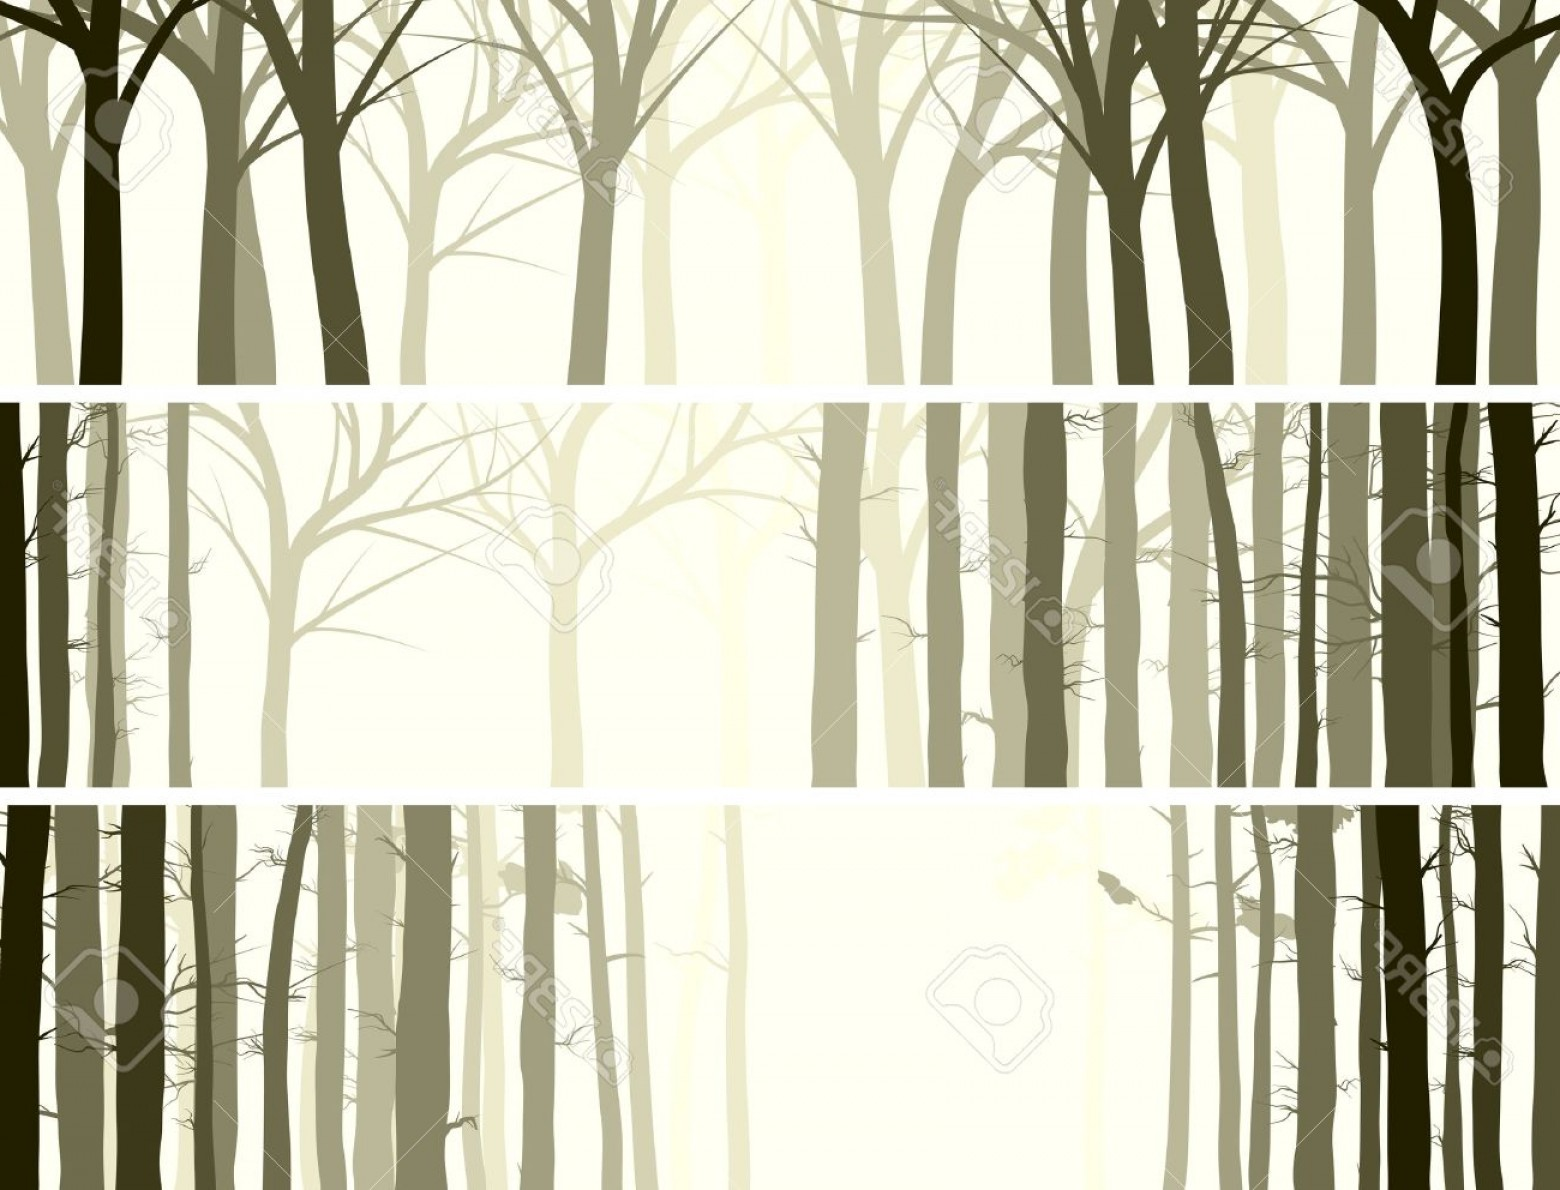 Tree Trunk Silhouette Vector: Photovector Abstract Horizontal Banner With Many Tree Trunks Coniferous And Deciduous Forest